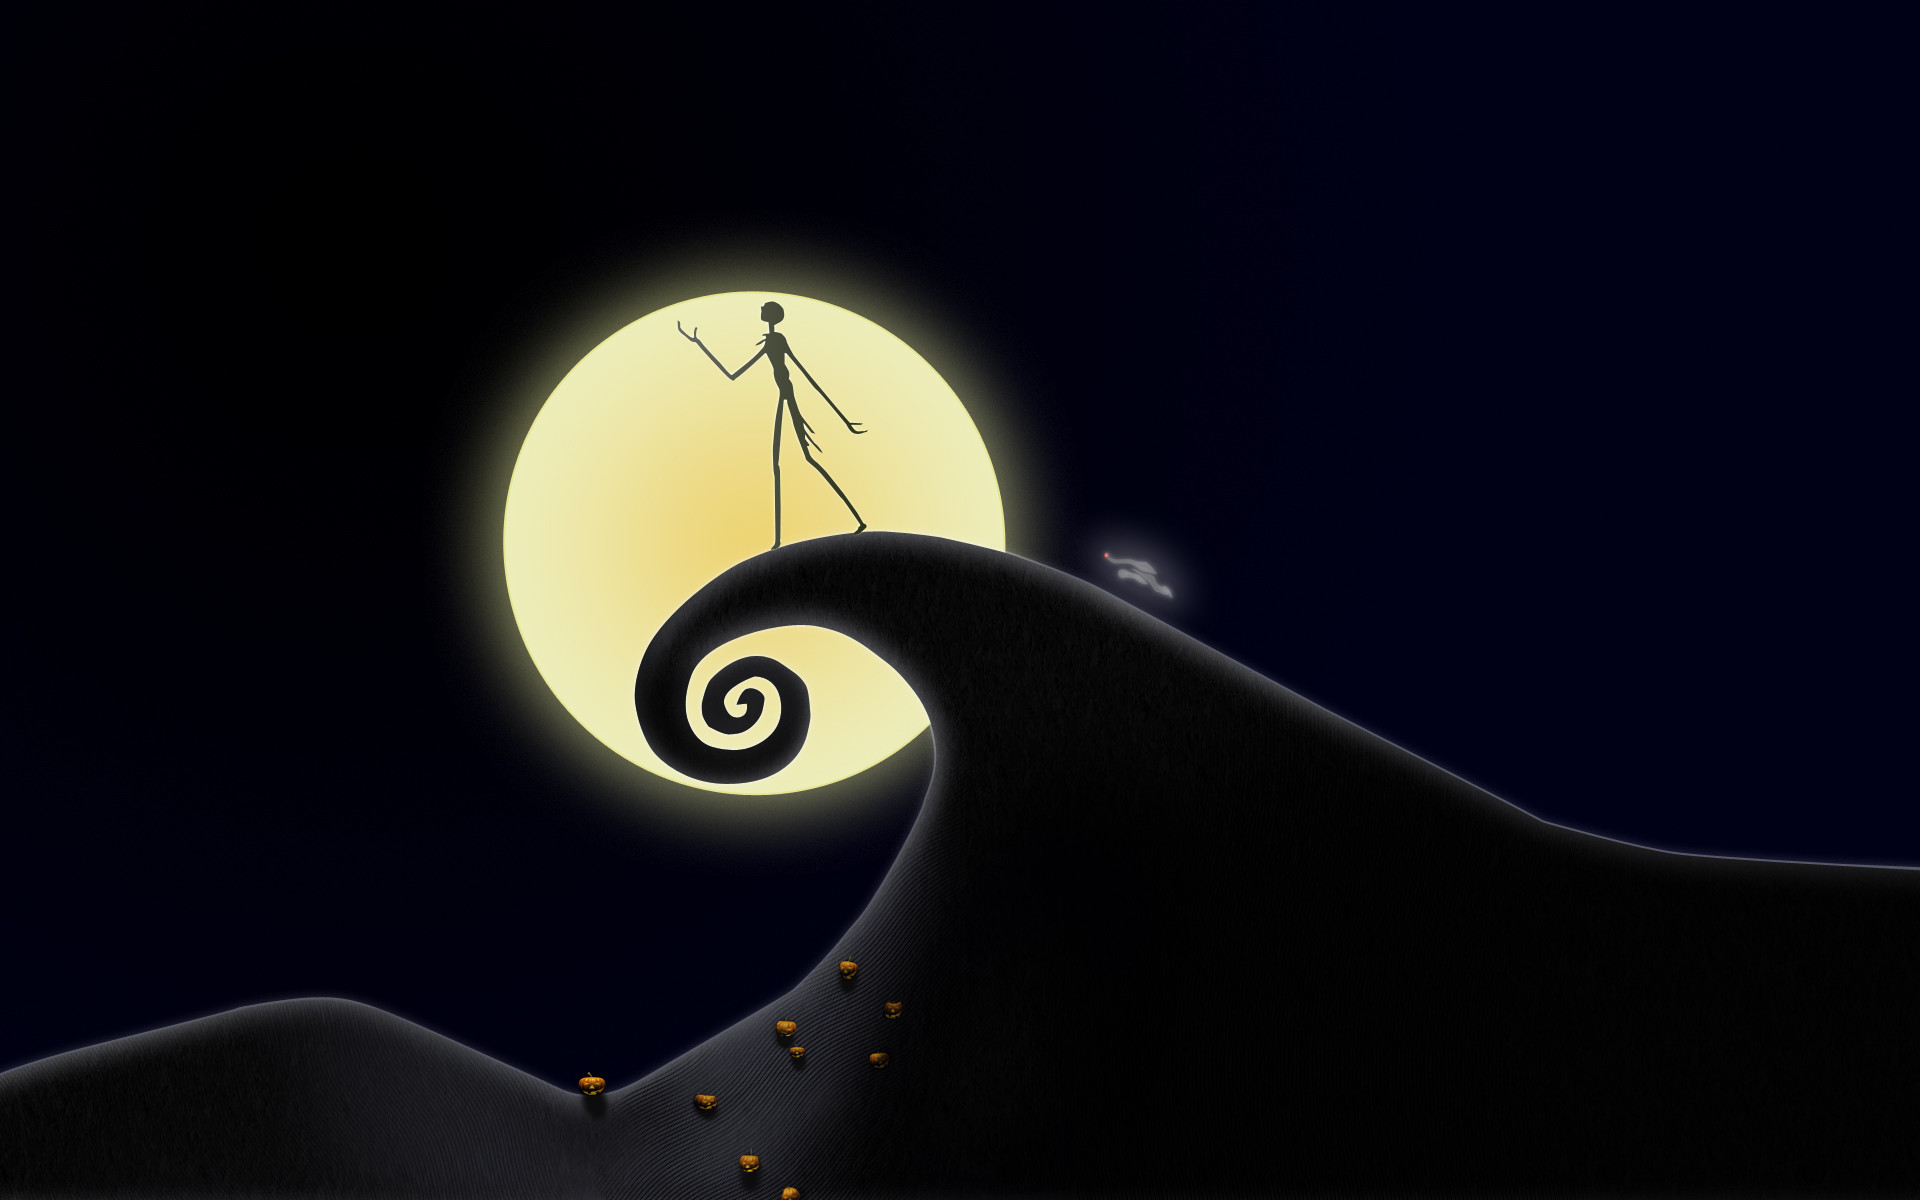 Jack And Sally Wallpaper Hd Nightmare Before Christmas Hd Wallpaper 75 Images